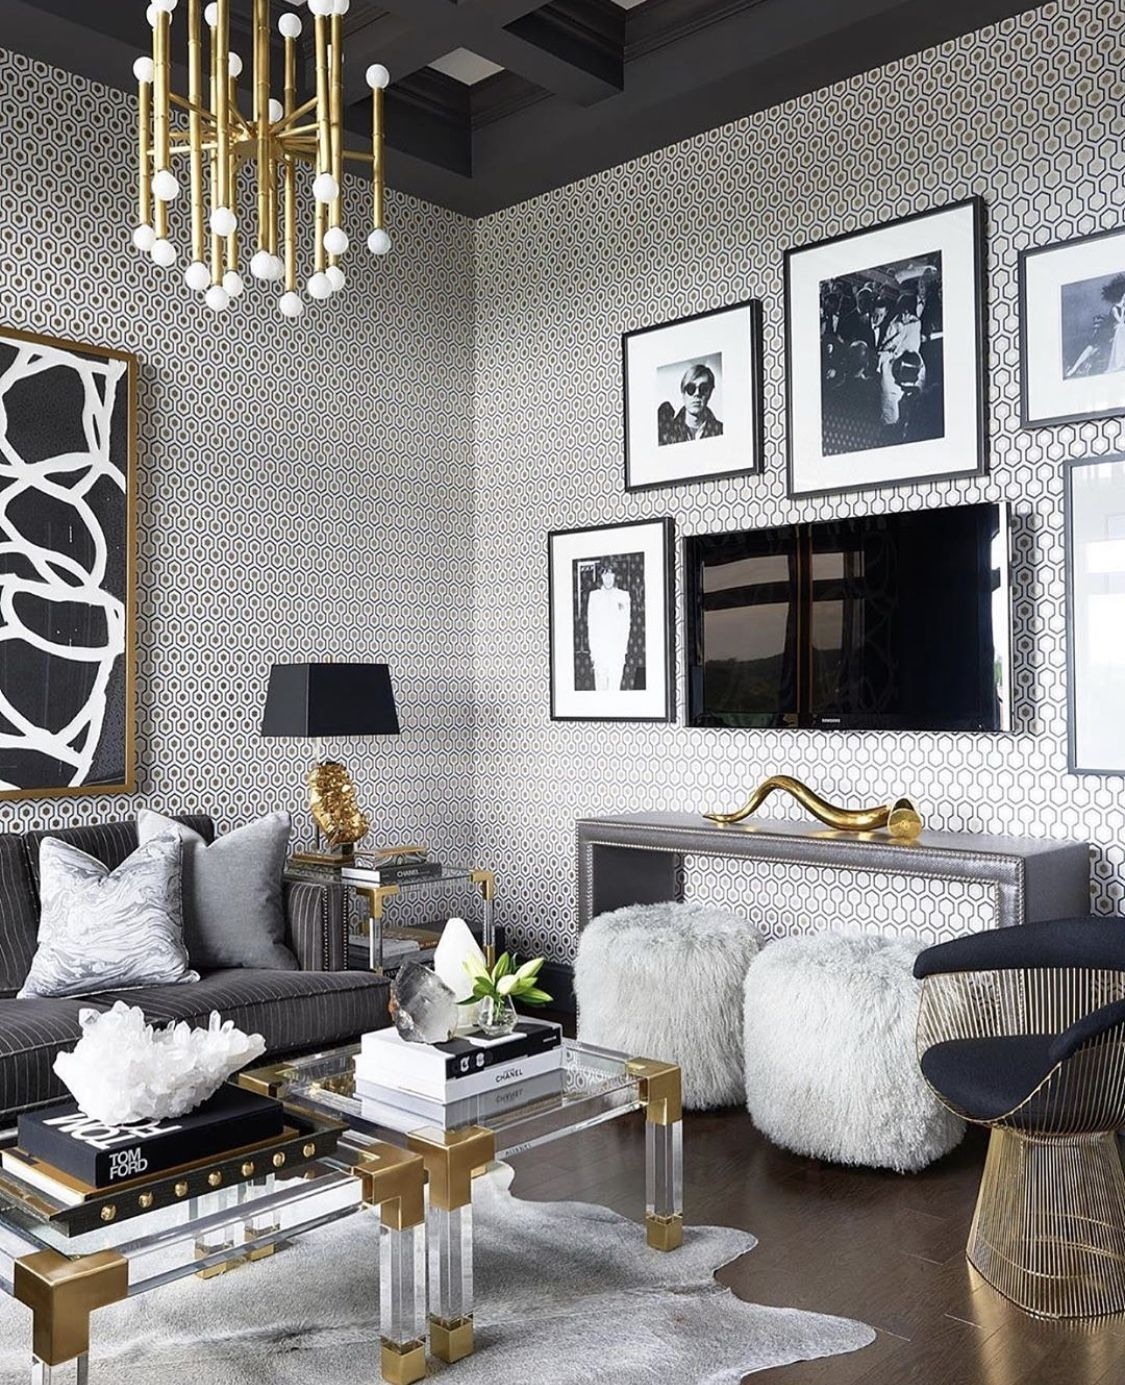 Stunning grey and gold living room decor with mitchell gold sofa